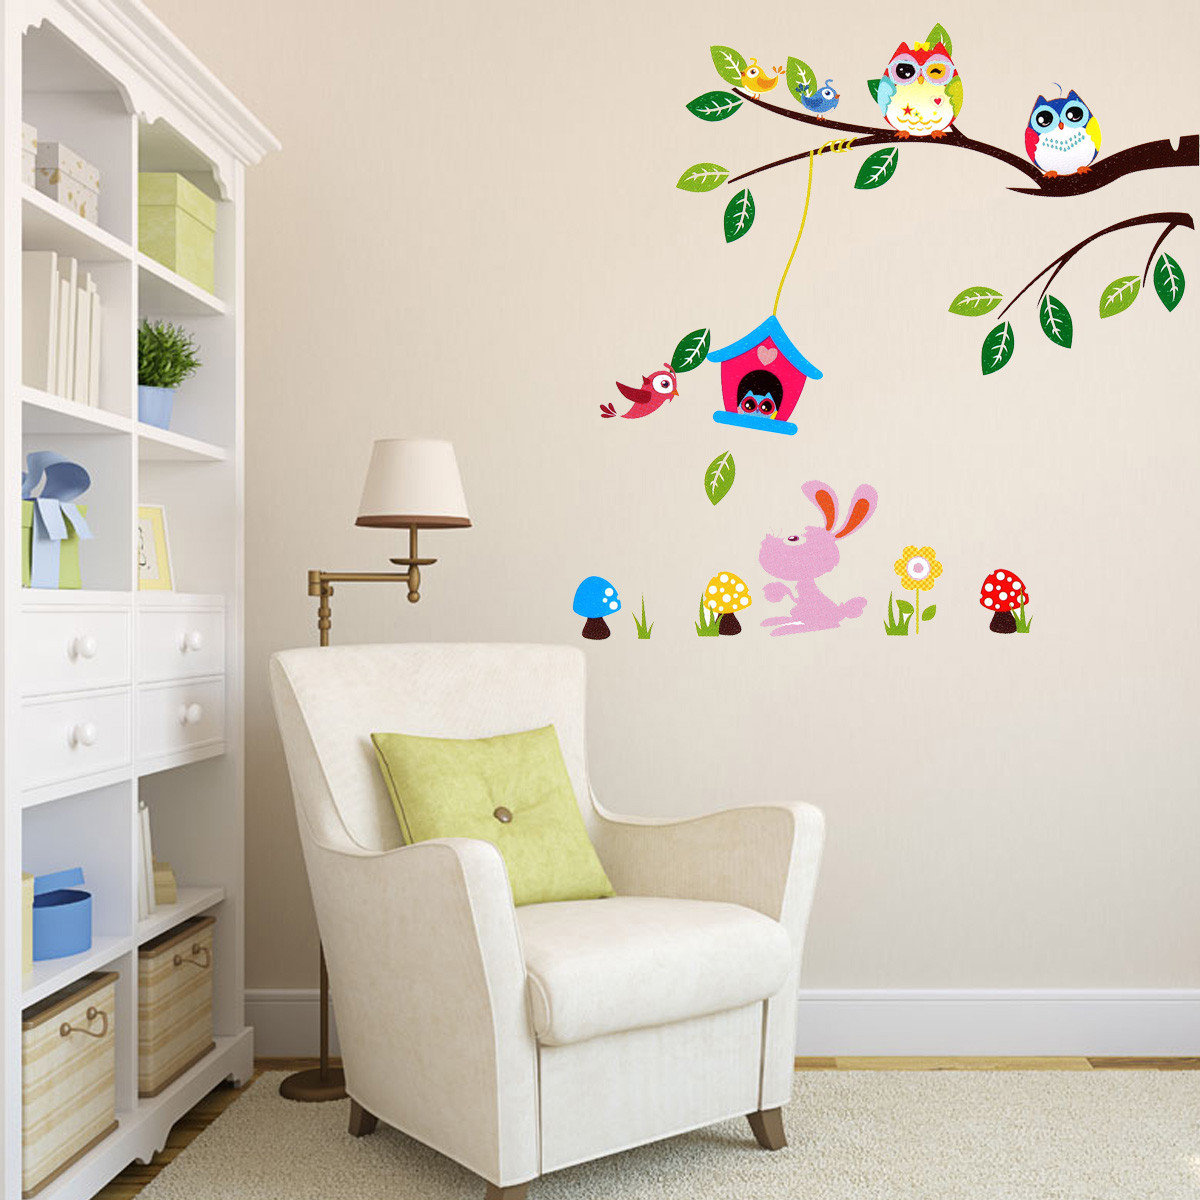 Children Kids Room Wall Sticker DIY Removable Forest Owl Tree Bird Papers Decal Art Home Decoration